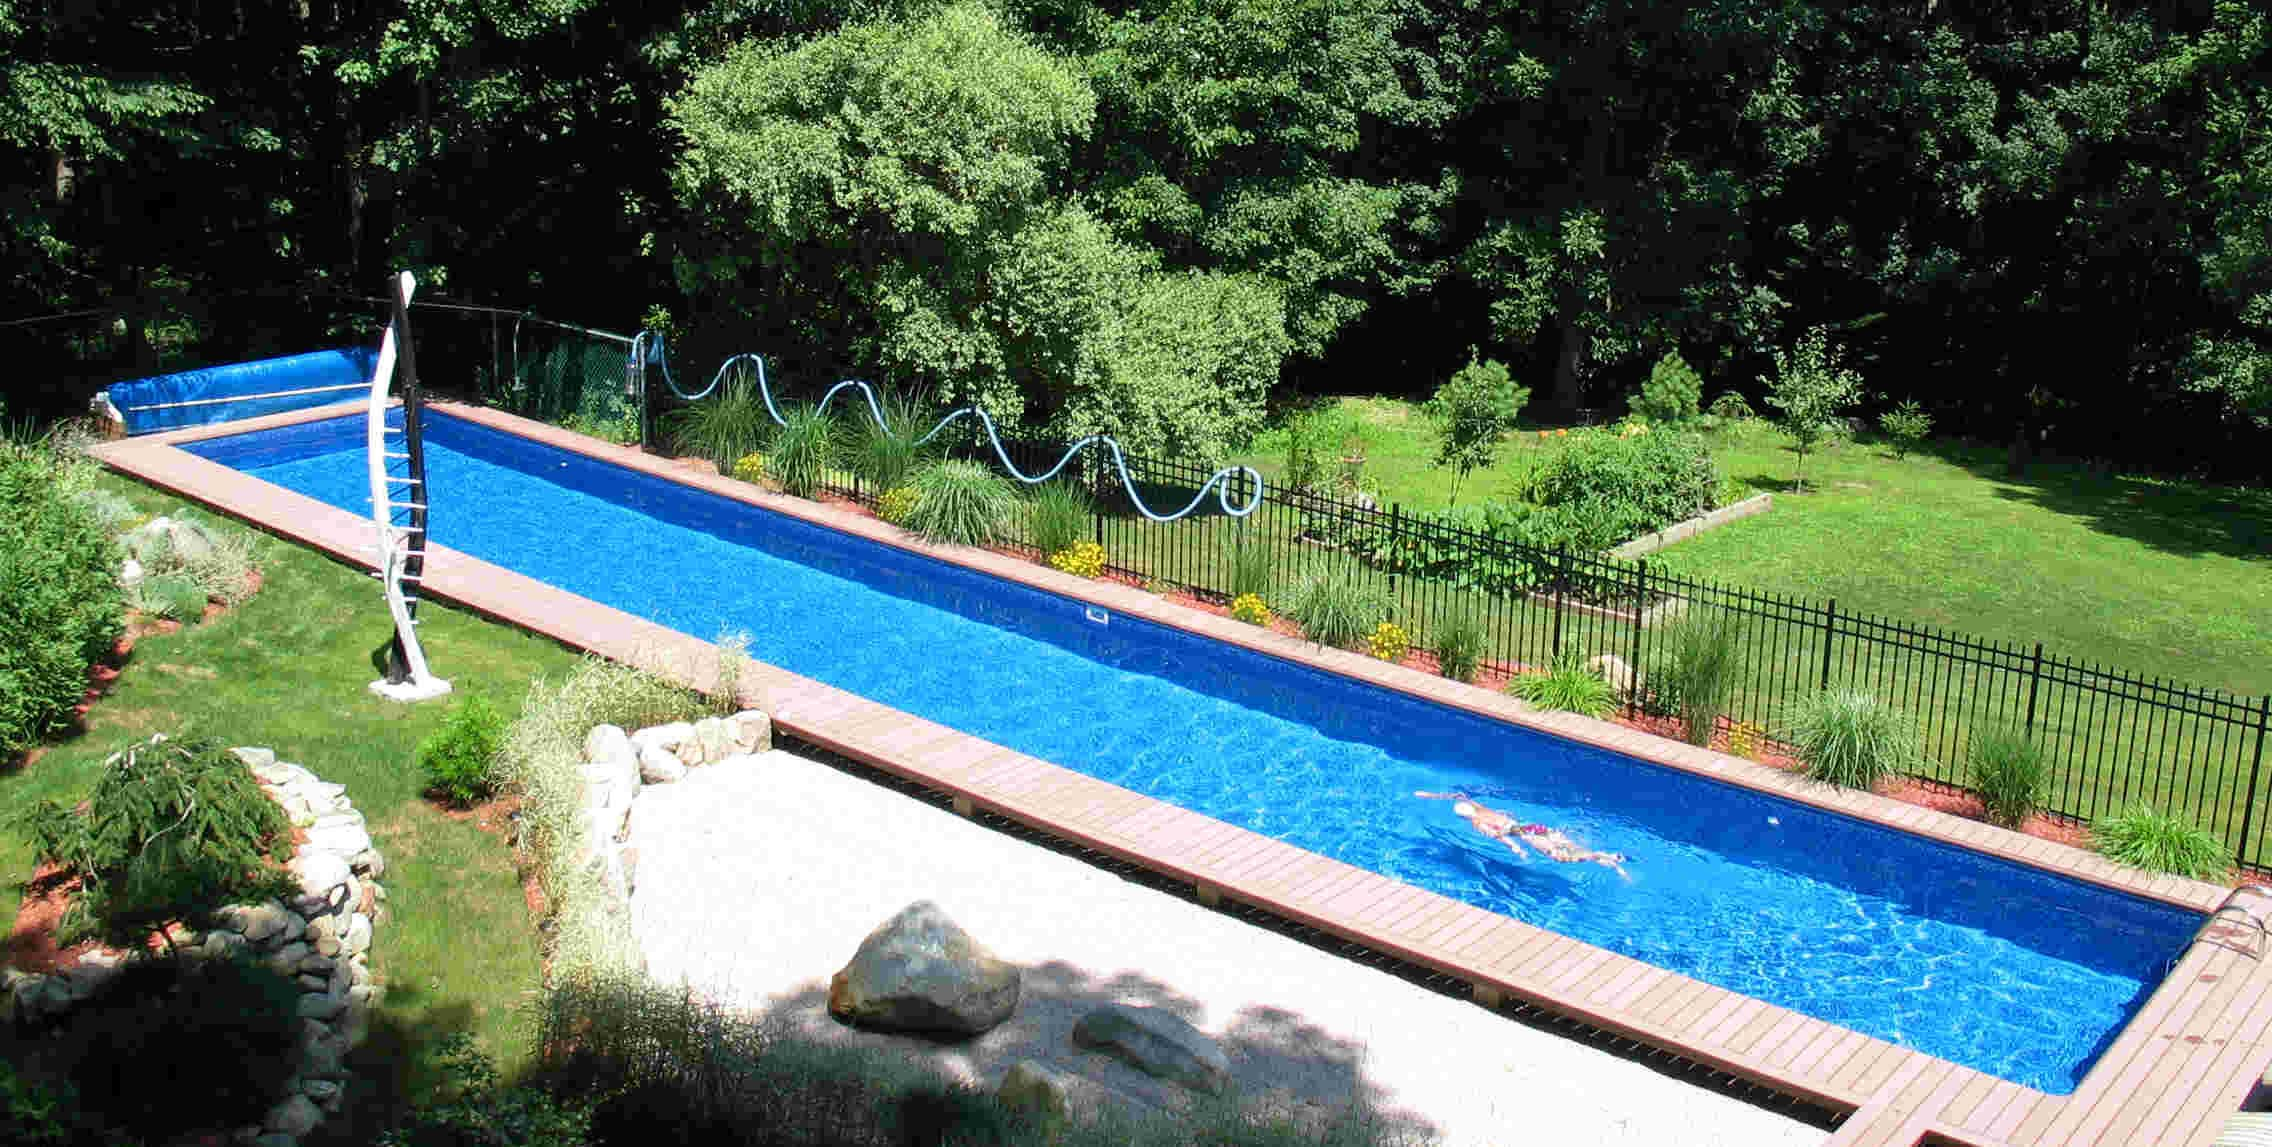 Diy inground swimming pool backyard design ideas for Diy small pool